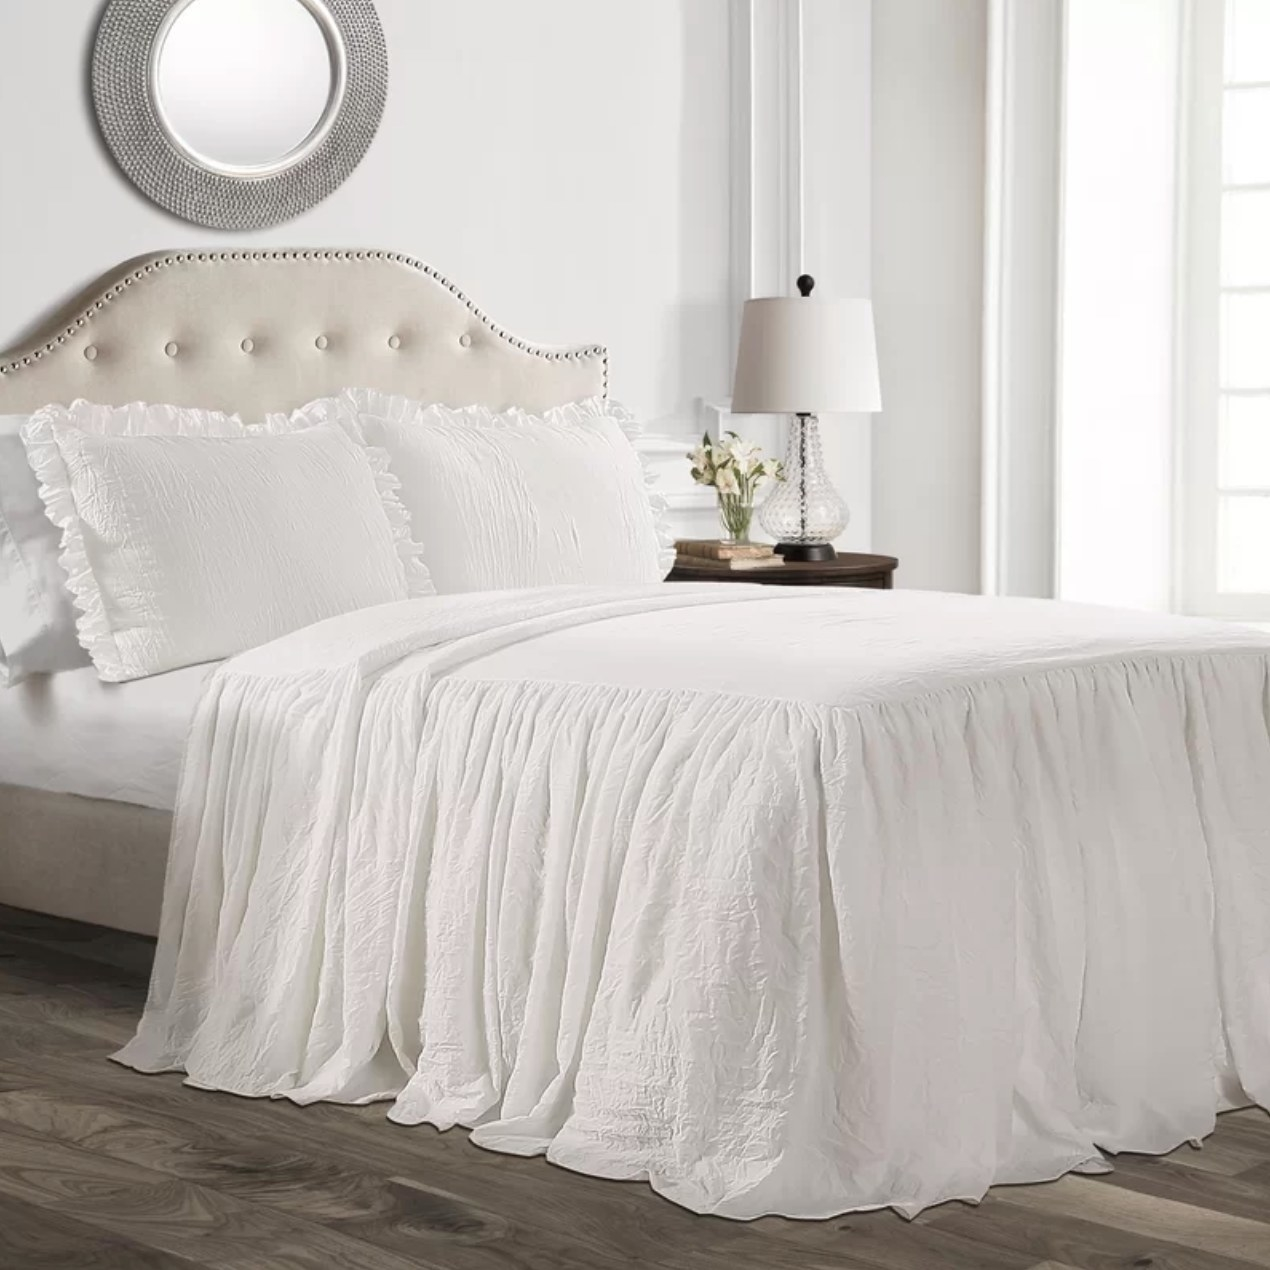 The ruffle skirt bedspread in white next to a side table with a lamp and flowers